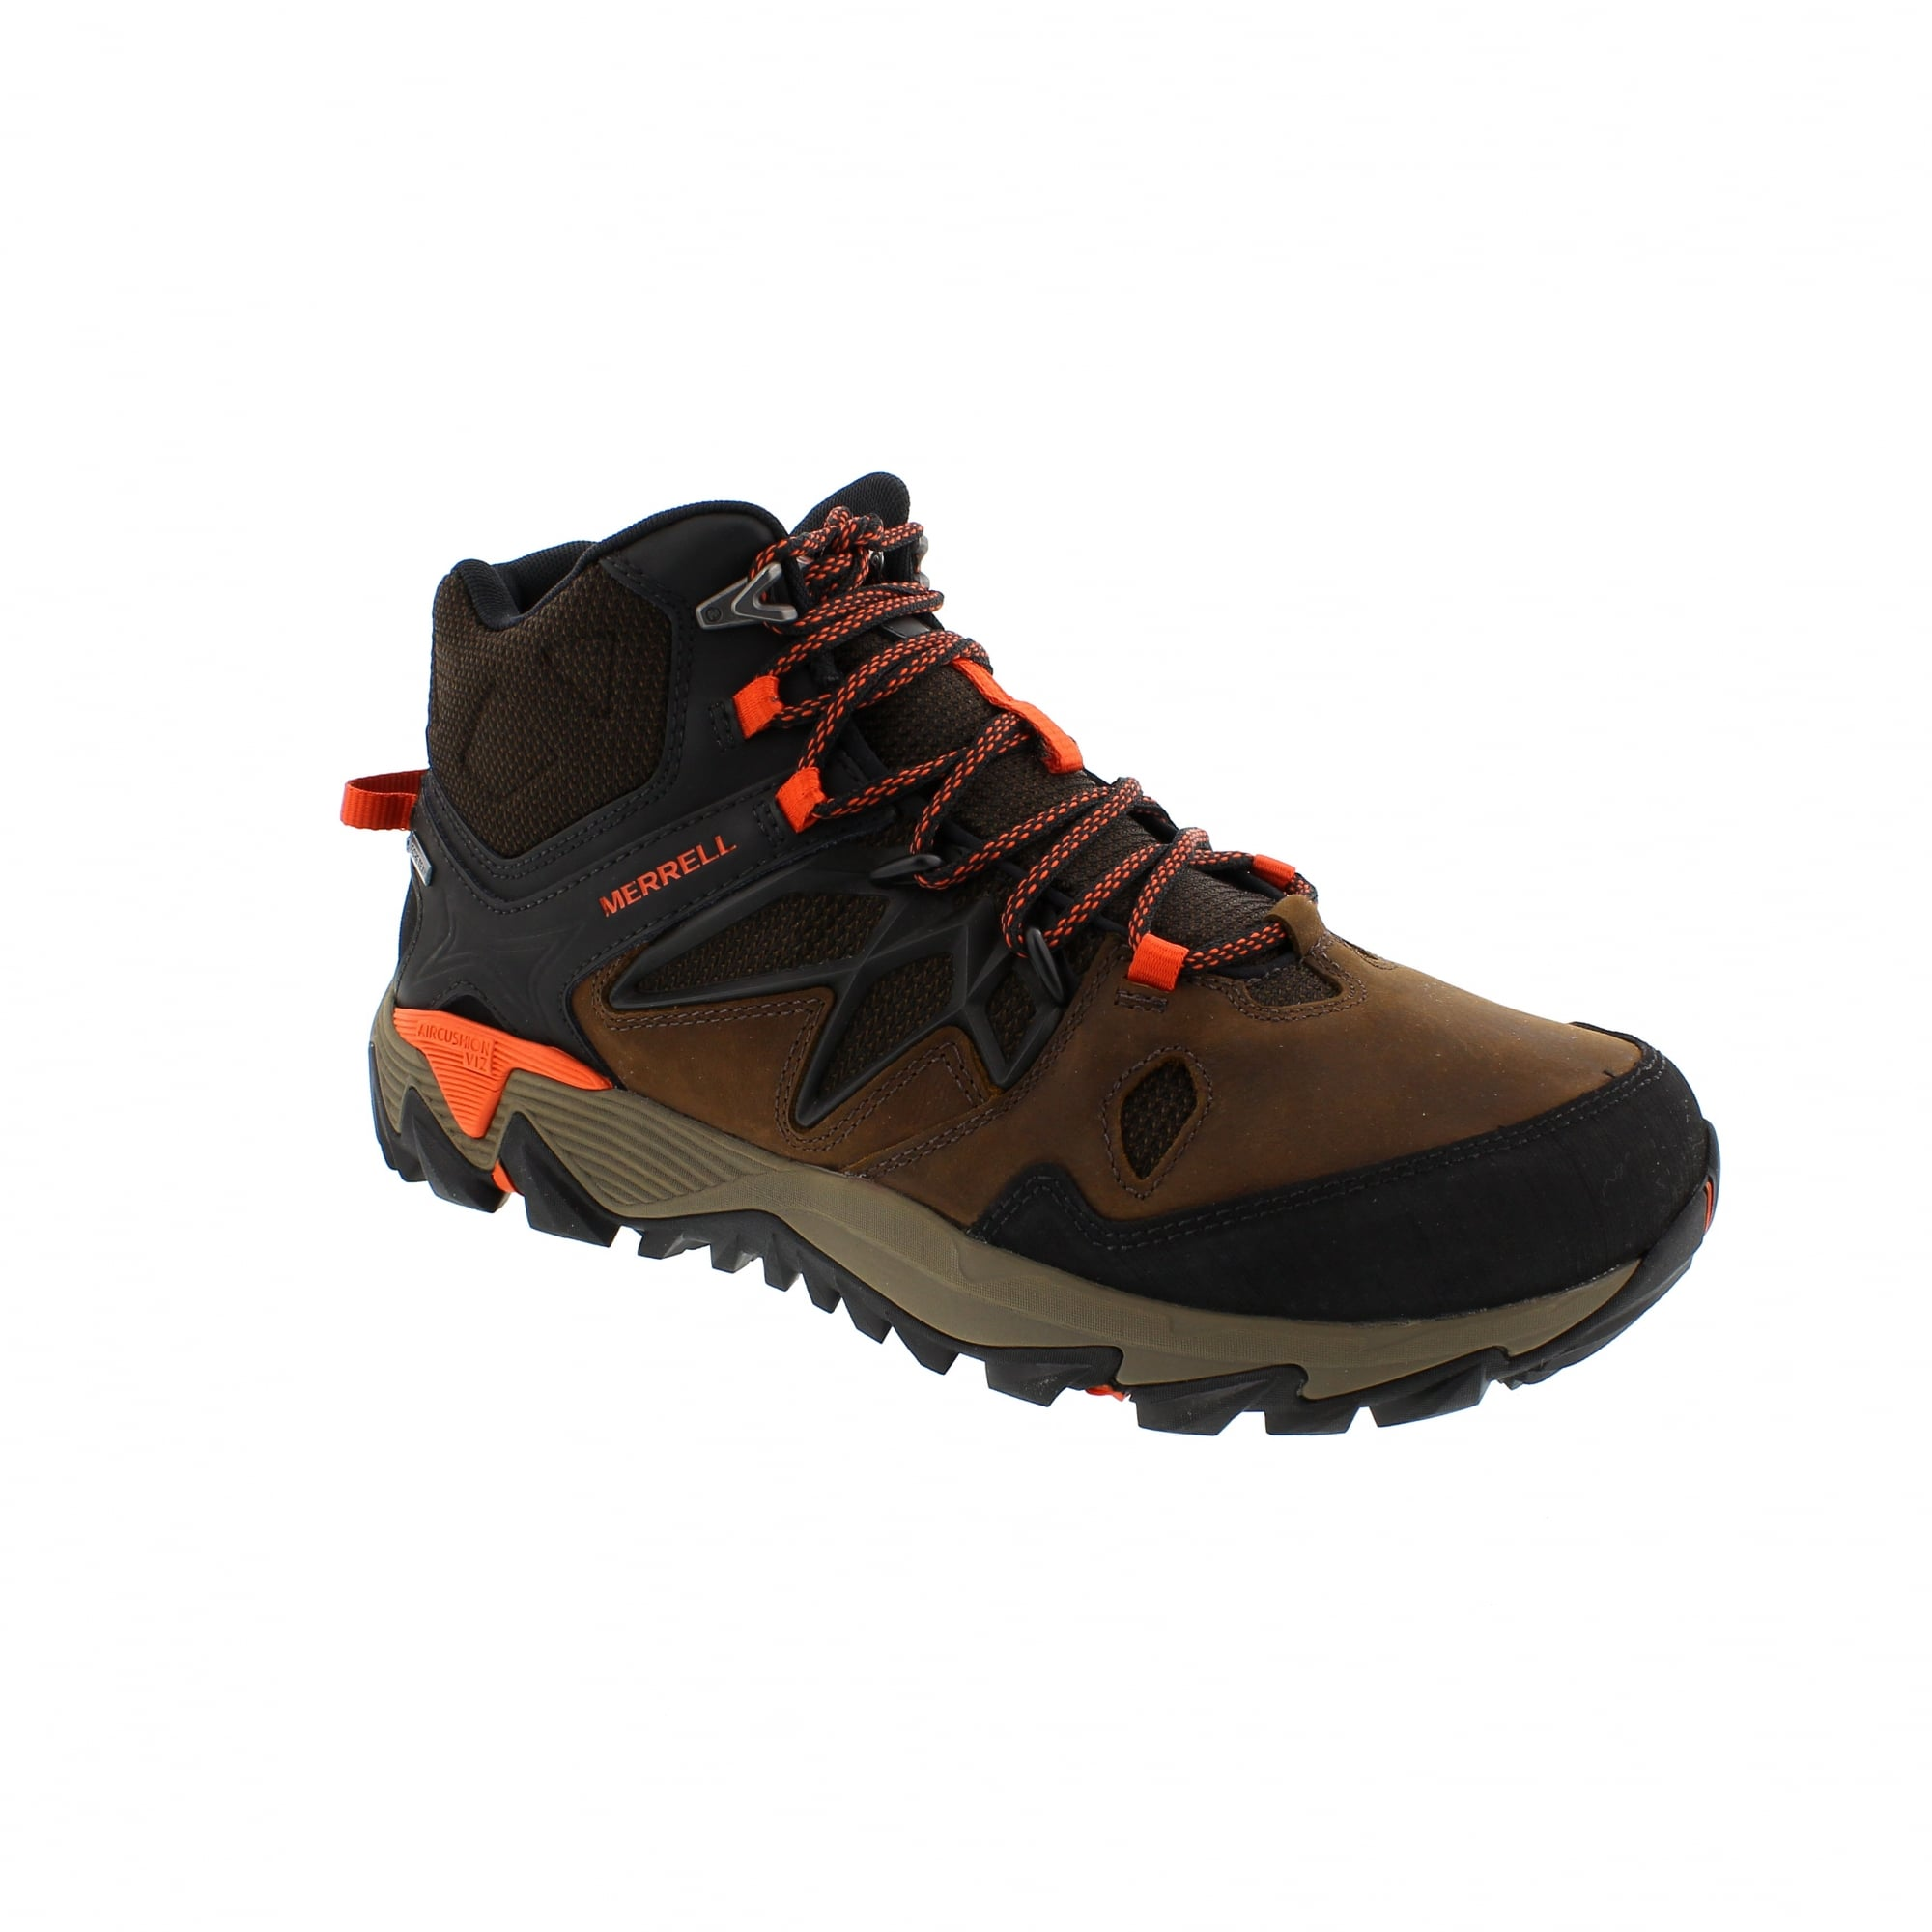 moins cher fb380 d6070 All Out Blaze 2 Mid Gore-Tex | J09389